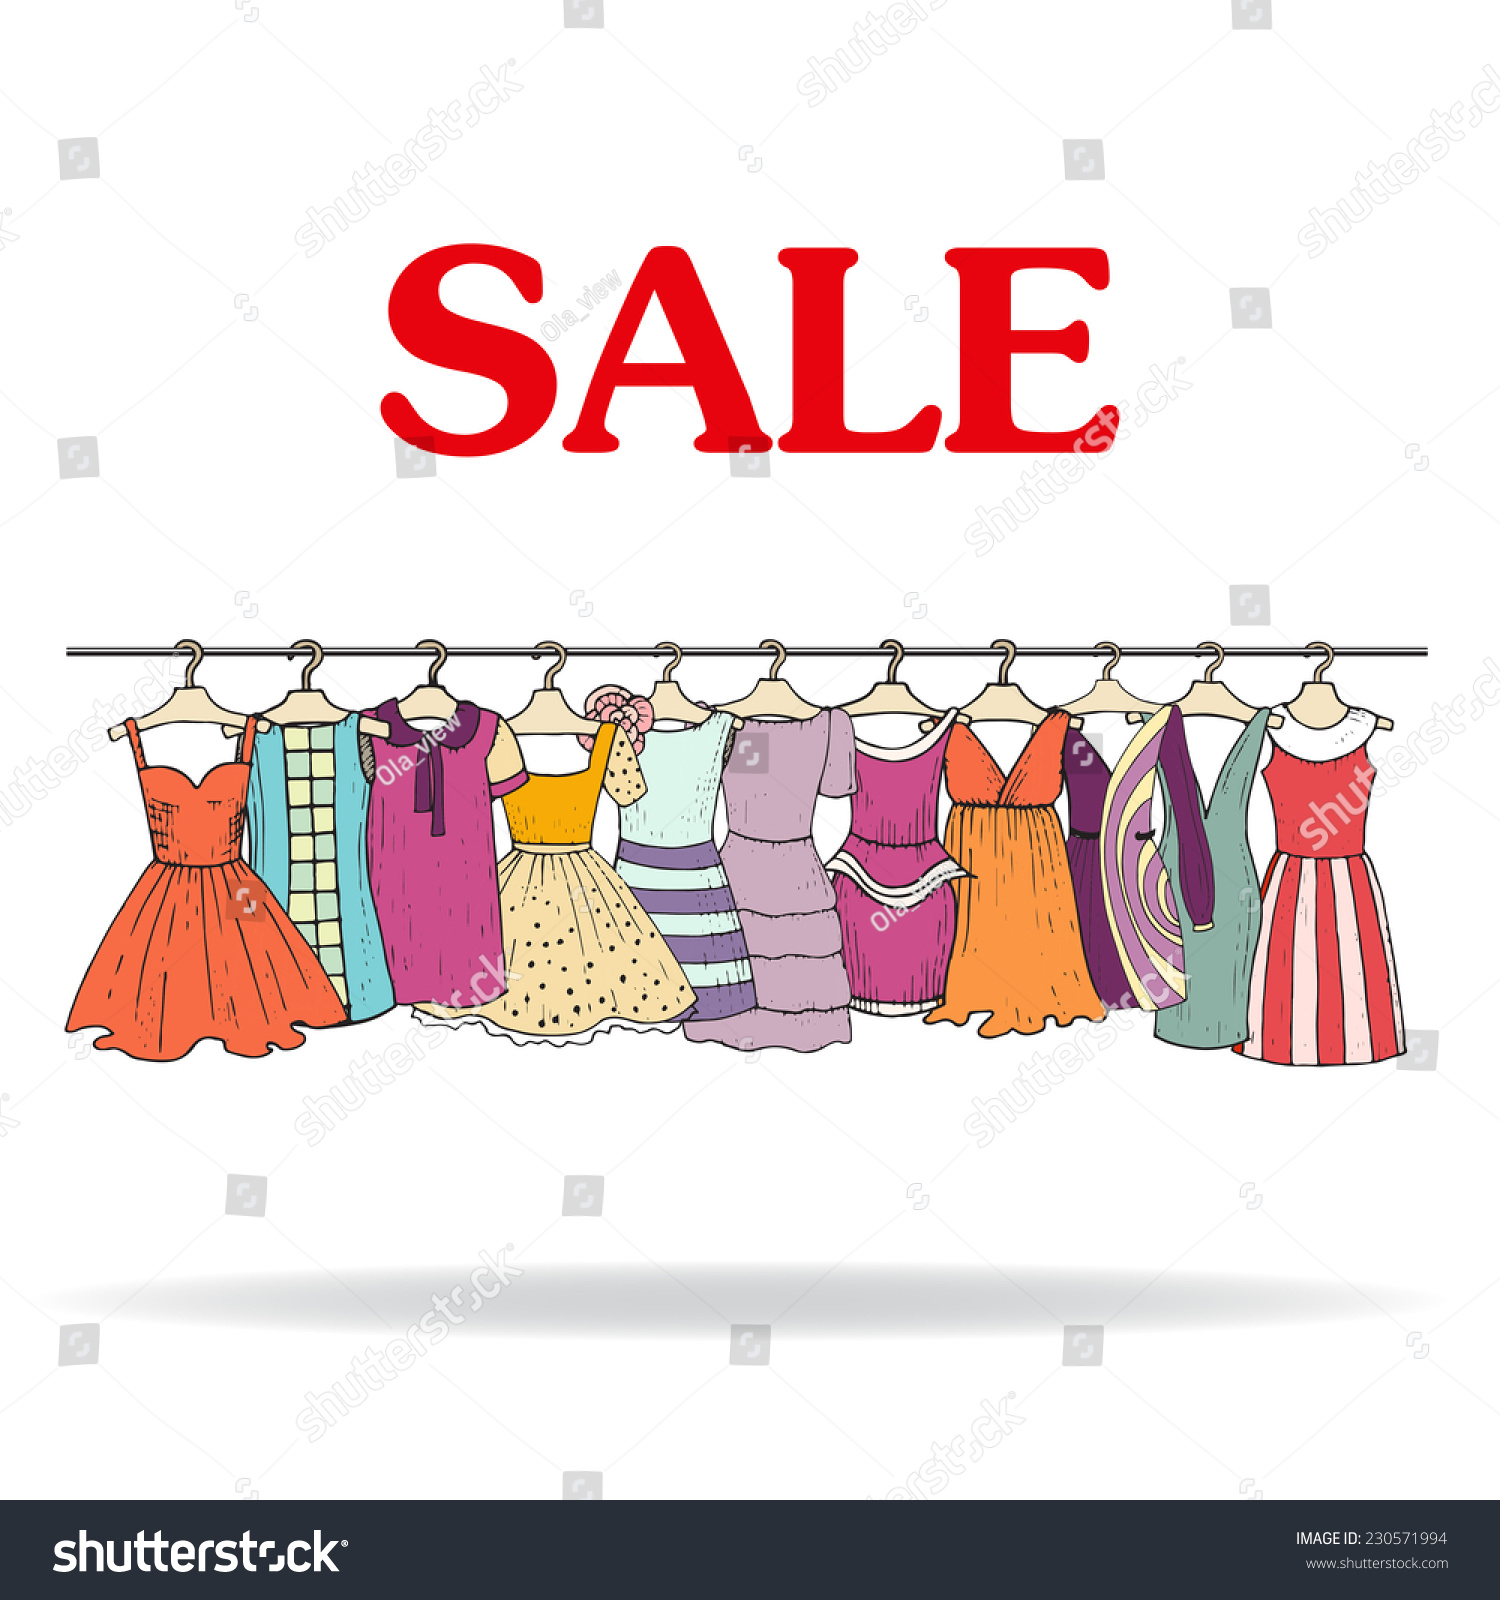 Shop sale clothing from trueiupnbp.gq, from pants and kirts to blouses and tops. BCBG.